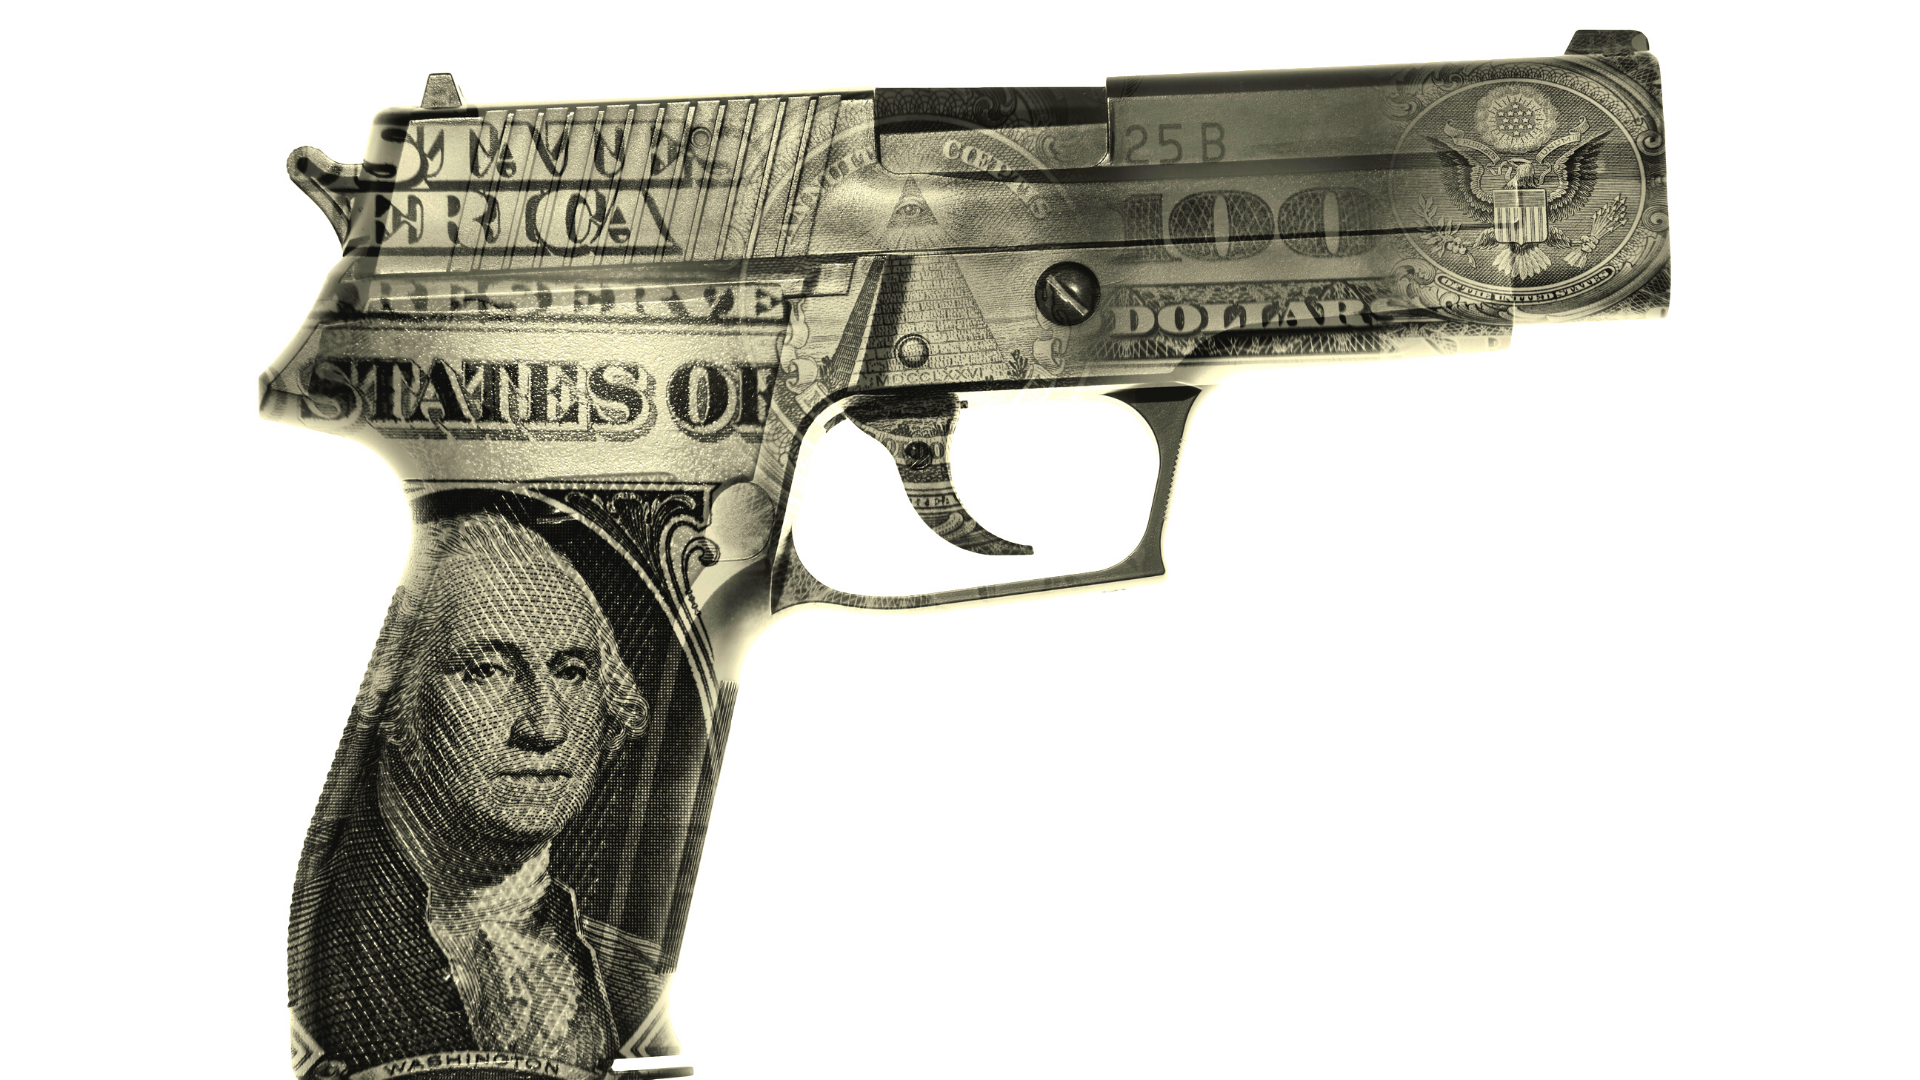 California cities experiment with cash incentives to reduce gun crimes